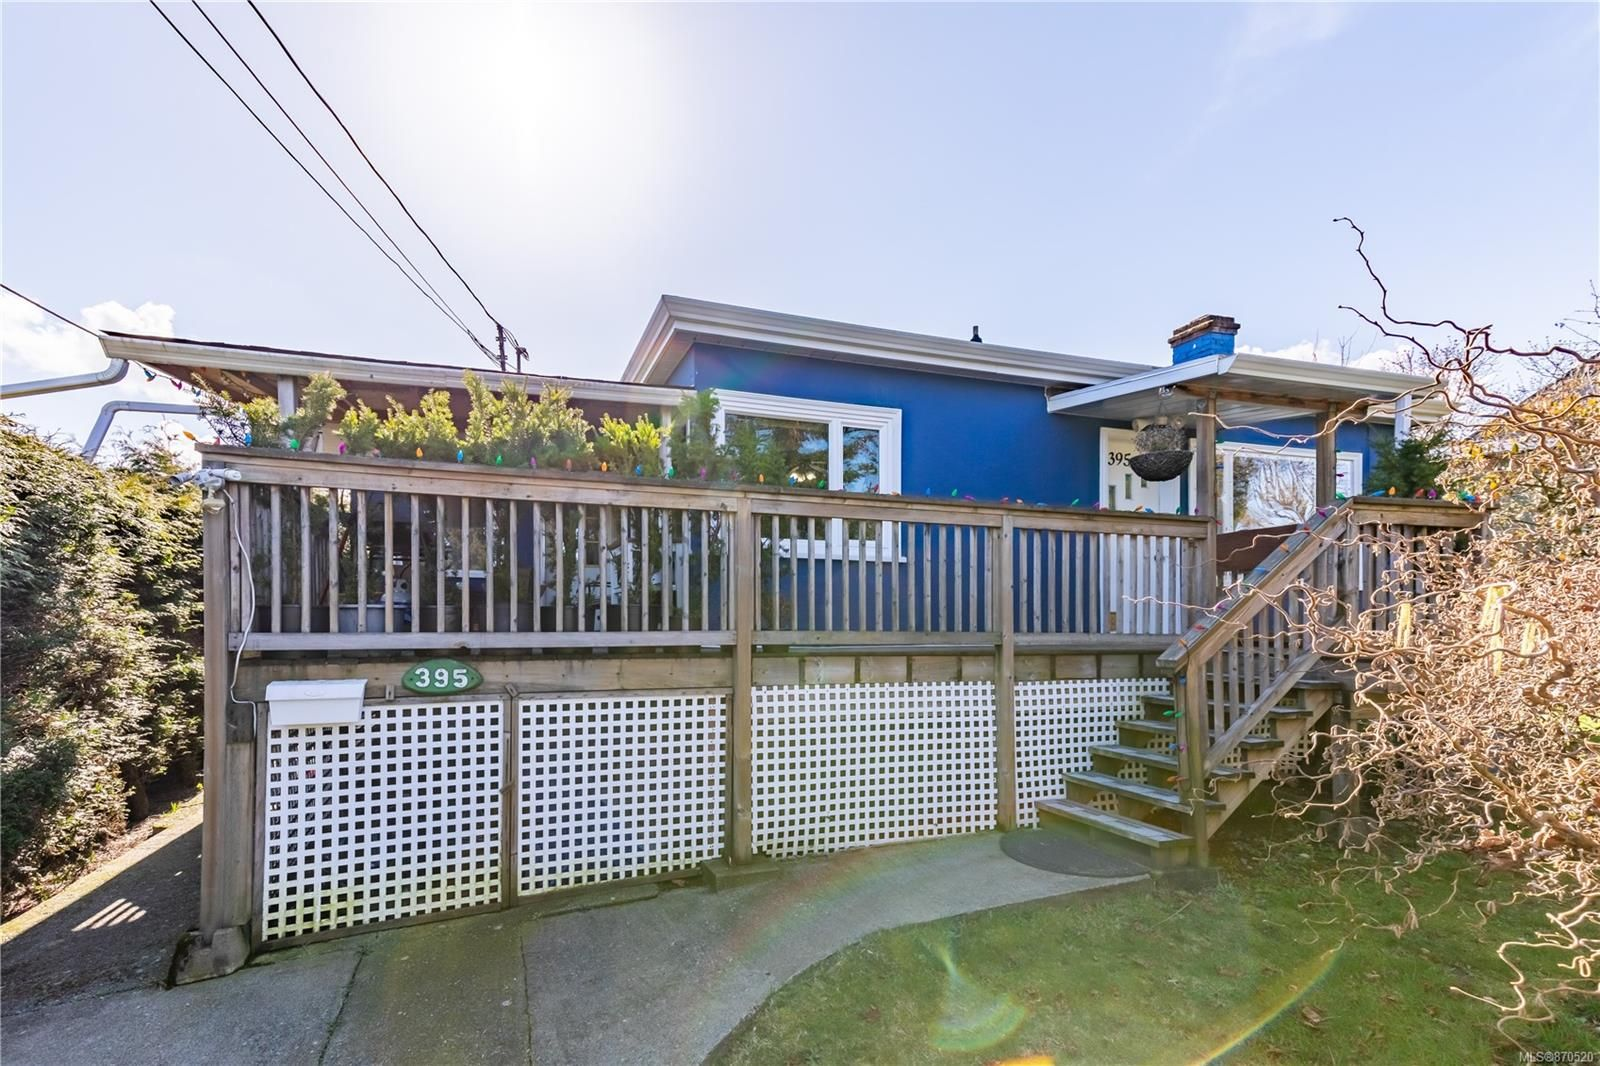 Main Photo: 395 Chestnut St in : Na Brechin Hill House for sale (Nanaimo)  : MLS®# 870520